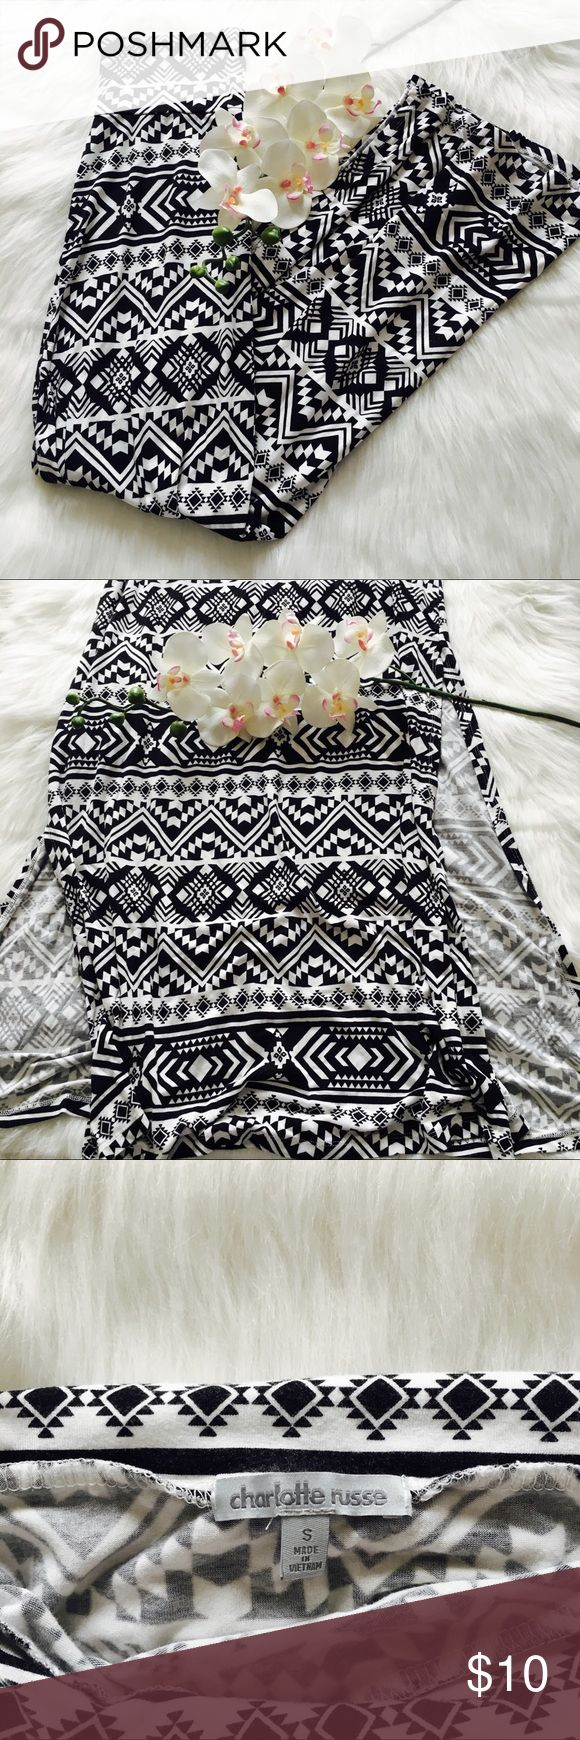 Aztec print maxi skirt Cute maxi skirt with slits up both sides. Only worn once, in perfect conditions. Charlotte Russe Skirts Maxi